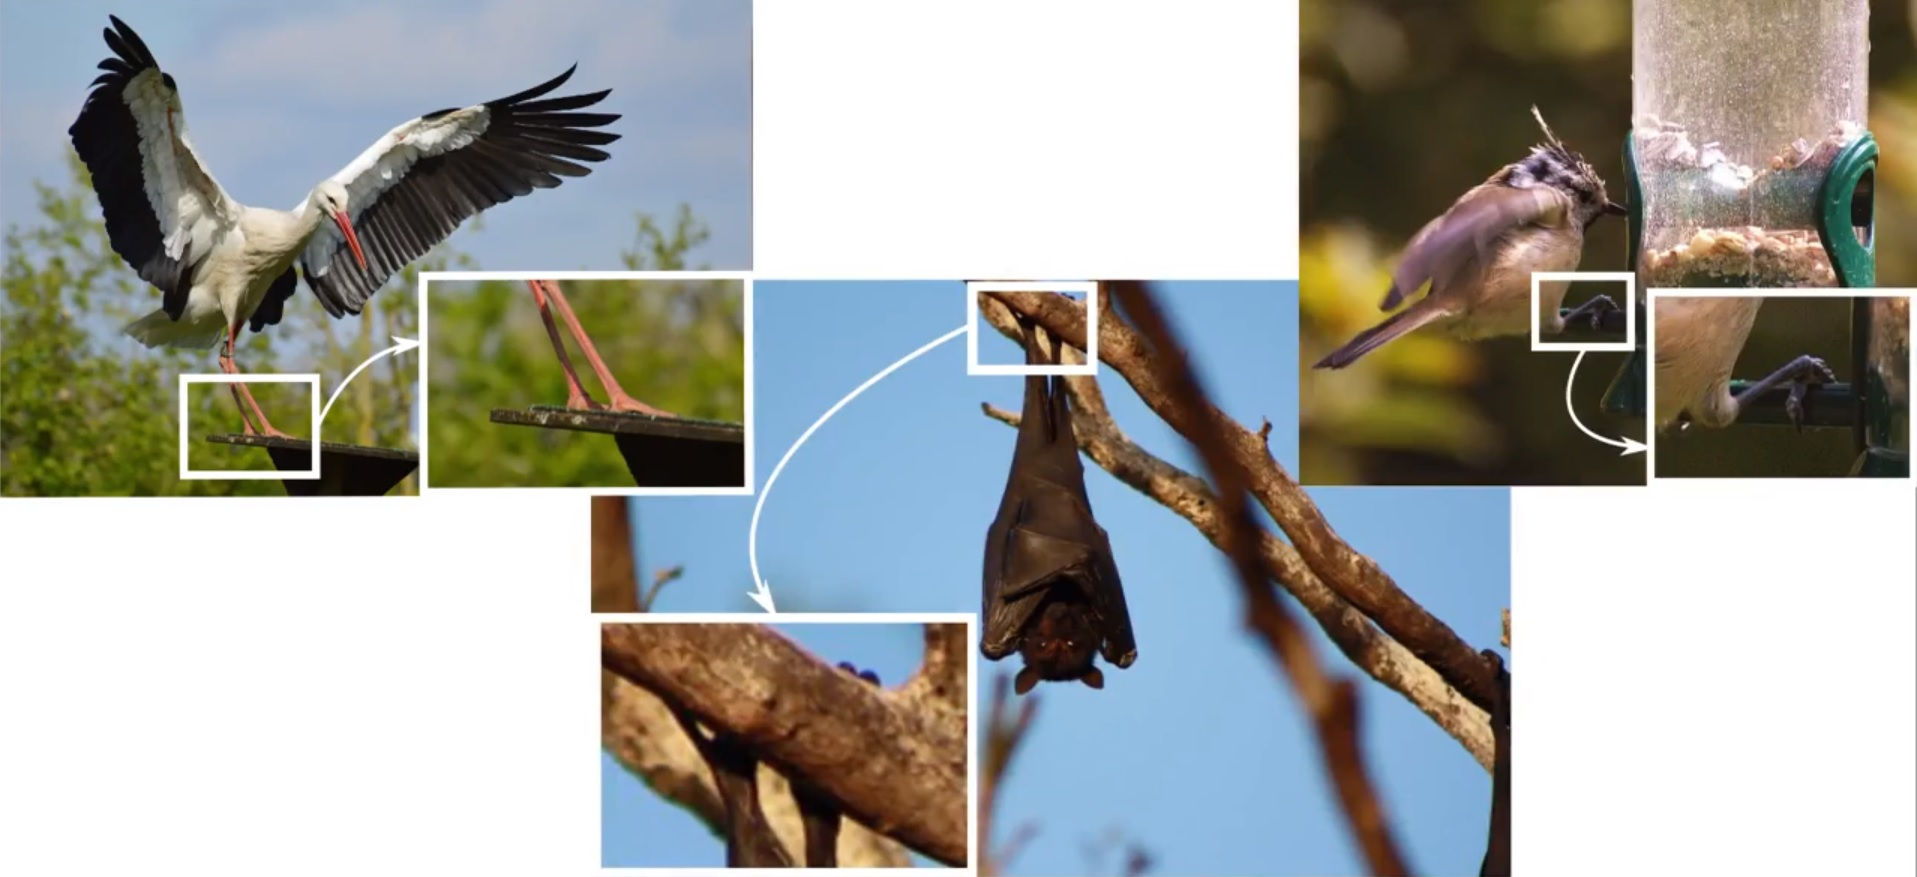 The Yale Research Group Looked To Way Birds And Bats Attach Themselves Objects In Order Develop A Frame That Lets Drones Land Previously